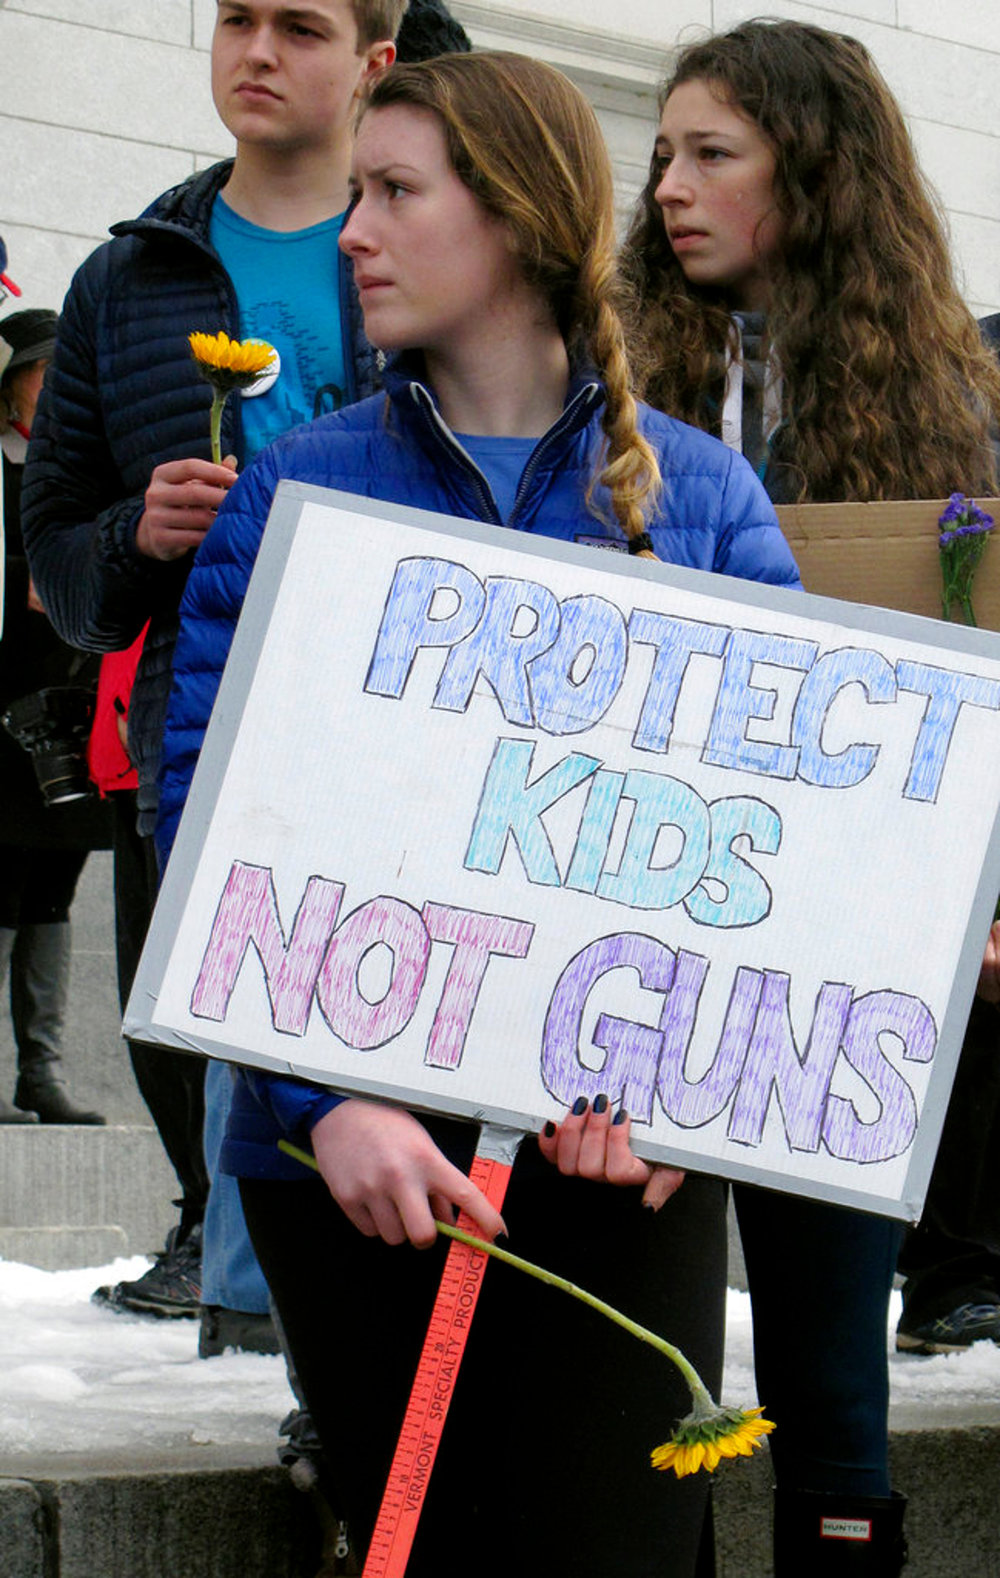 Alex Devaux, of Richmond, Vt., holds a sign outside the Vermont Statehouse in Montpelier, Vt., on Tuesday Feb. 20, 2018. Devaux, a high school senior, attended the demonstration that followed comments by Republican Gov. Phil Scott who said he was open to discussion about gun control as part of a broader discussion of ways to reduce violence. Scott's comments came after Vermont police arrested a suspect who they say was preparing for a school shooting. Vermont has long been considered to have some of the most lax gun control laws in the country. (AP Photo/Wilson Ring)